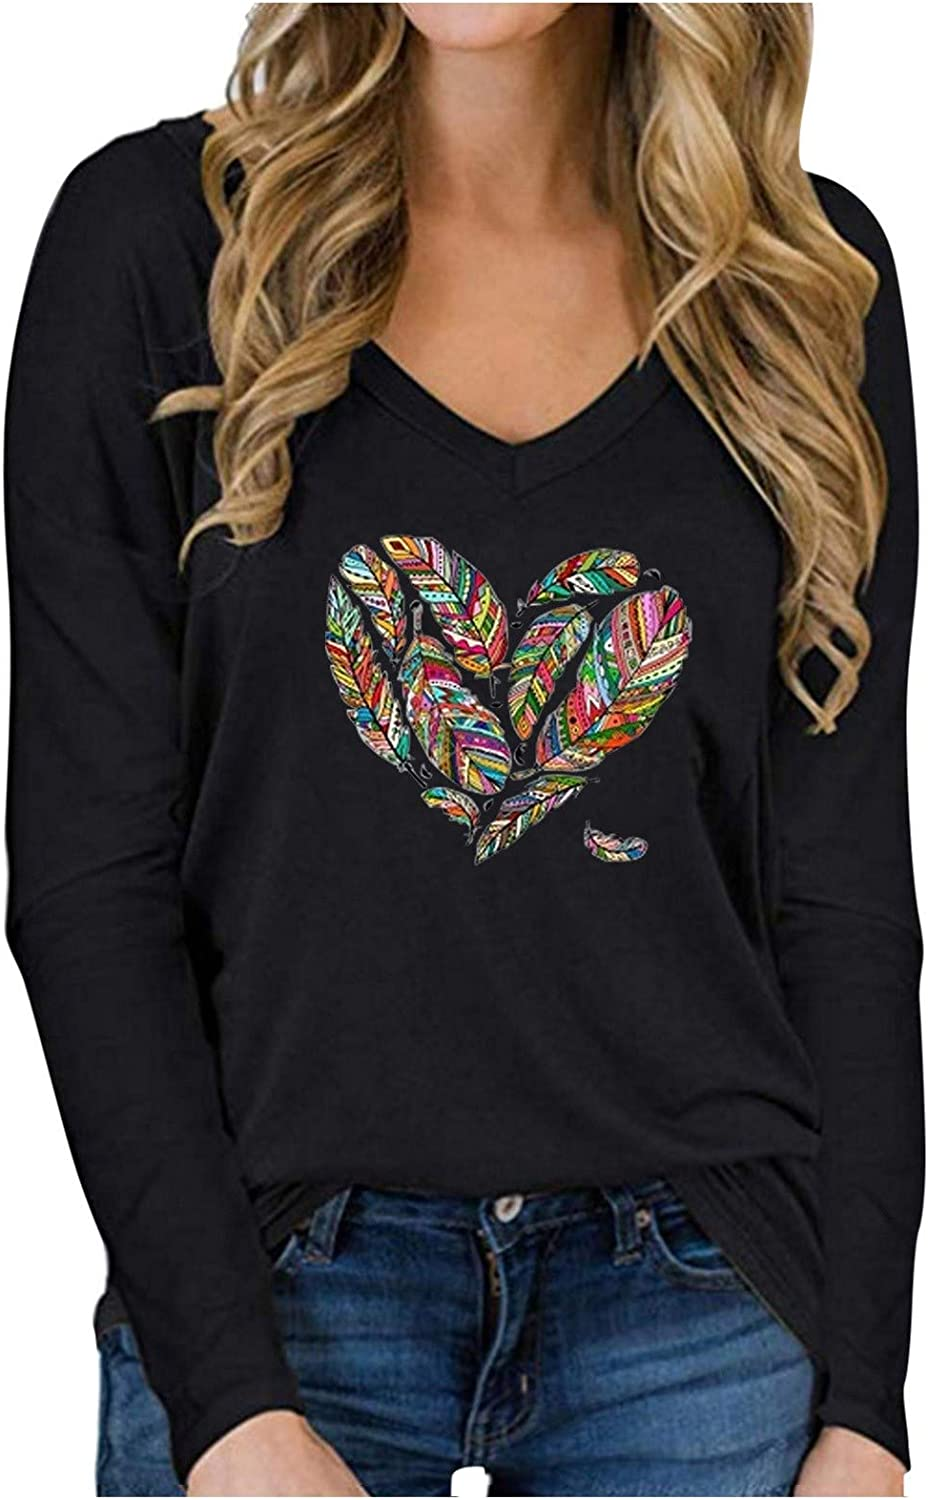 HGWXX7 Womens Tops V Neck Floral Print T-Shirts Plus Size Long Sleeve Lightweight Pullover Tunic Blouse